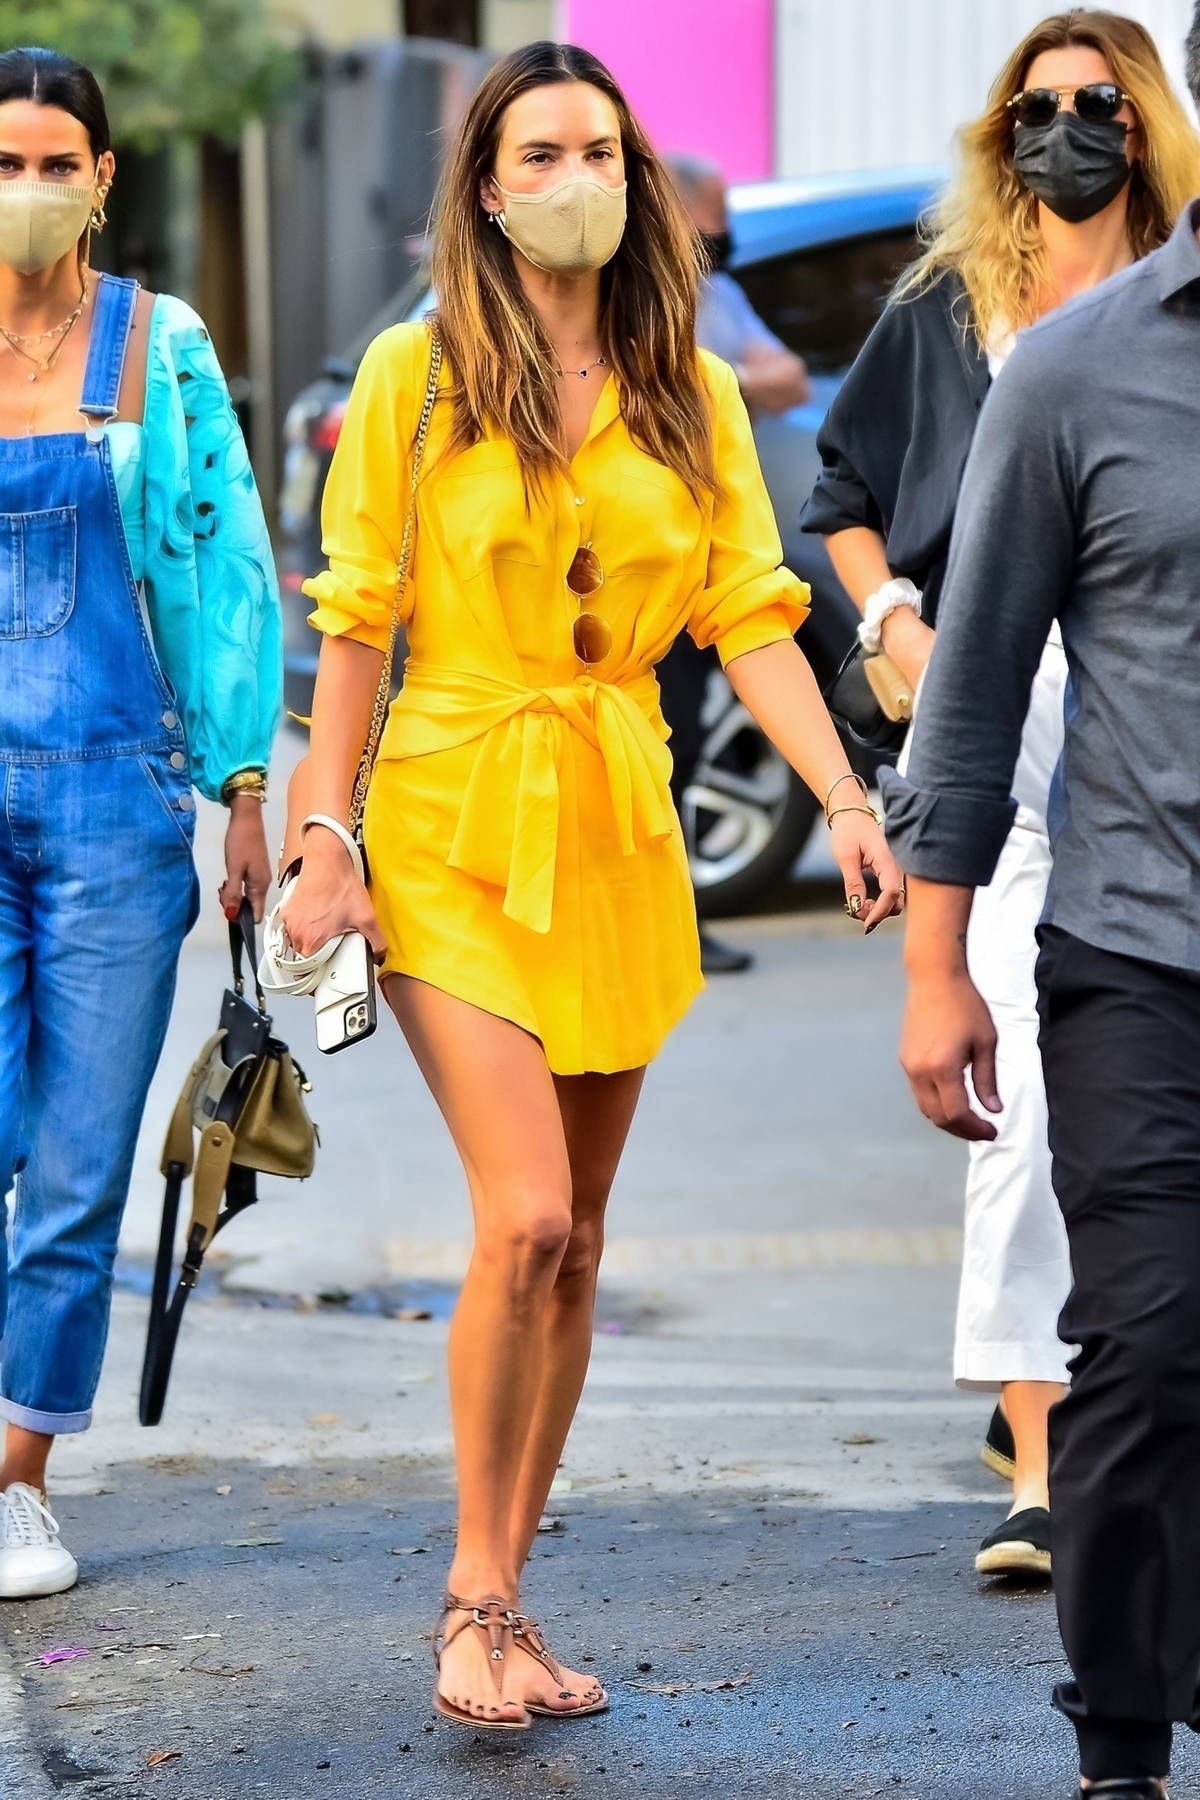 Alessandra Ambrosio stuns in a yellow dress as she and boyfriend Richard Lee grab lunch with friends in Sao Paulo, Brazil